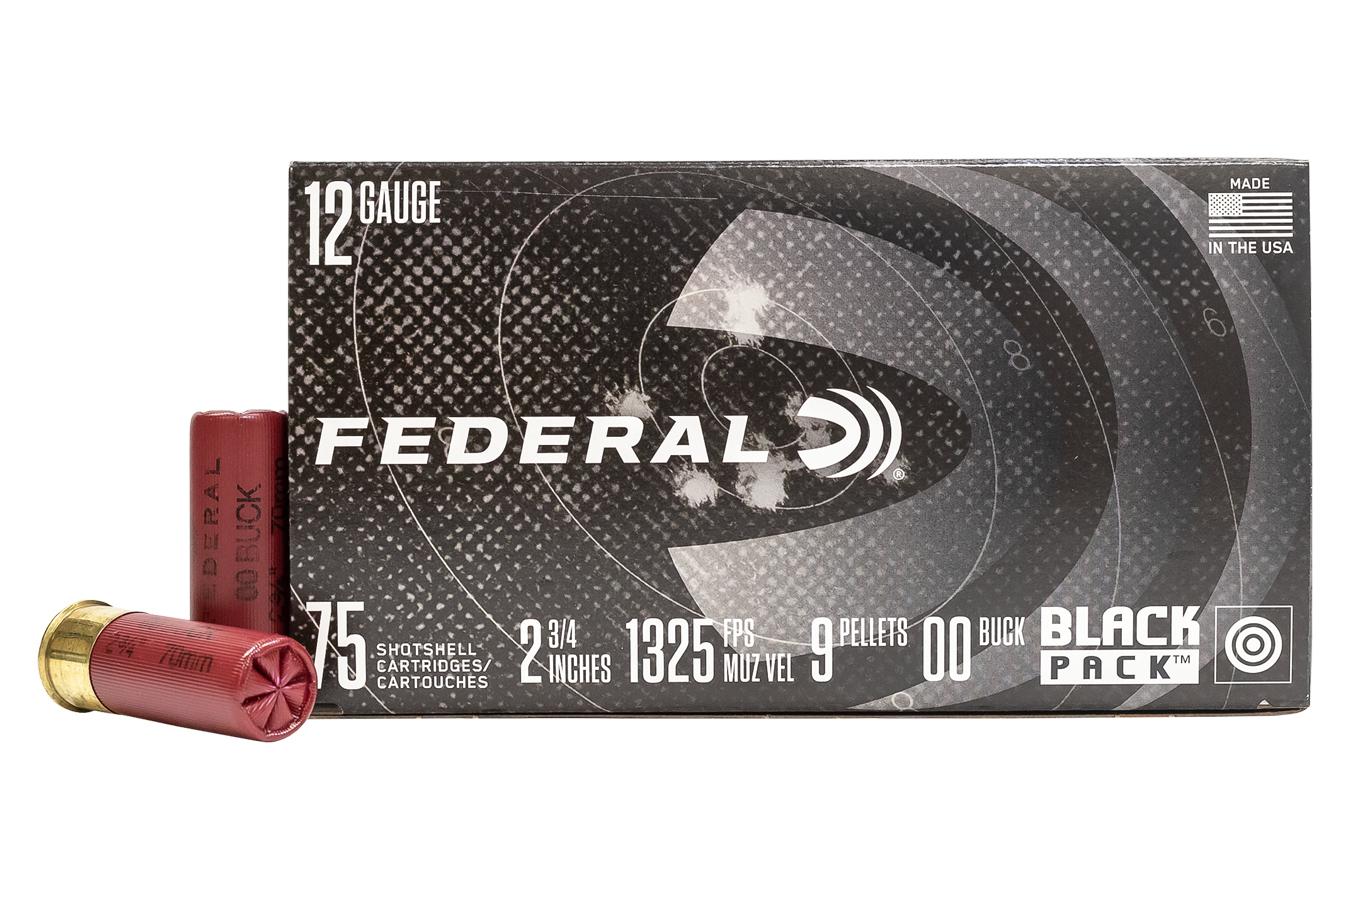 12 GAUGE 2-3/4 IN 00 BUCKSHOT BLACK PACK 75/BOX